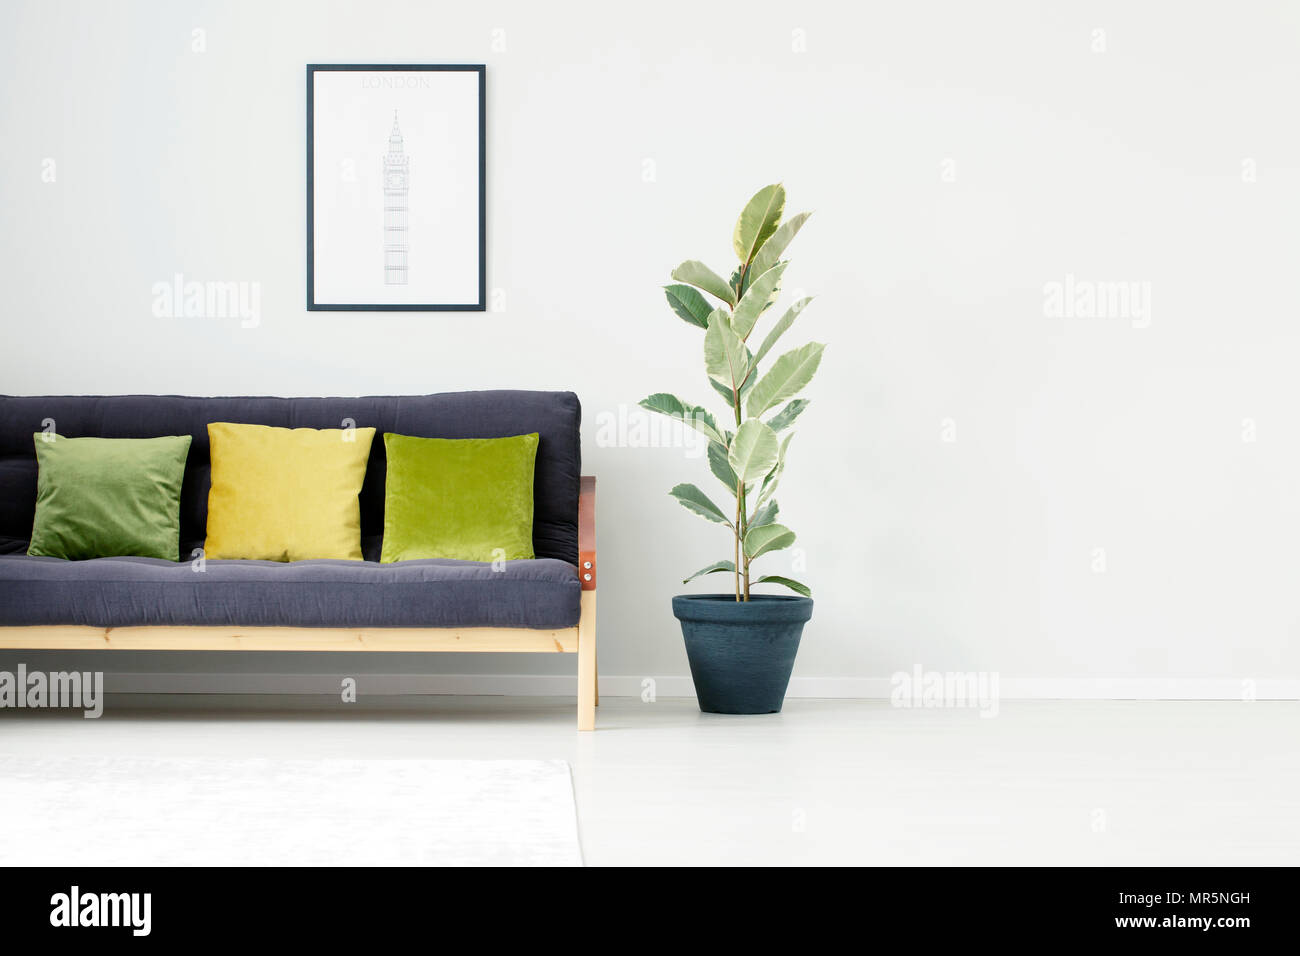 Ficus Tree Next To Black Sofa With Green And Yellow Pillow In Living Room Interior With Poster And Copy Space Stock Photo Alamy